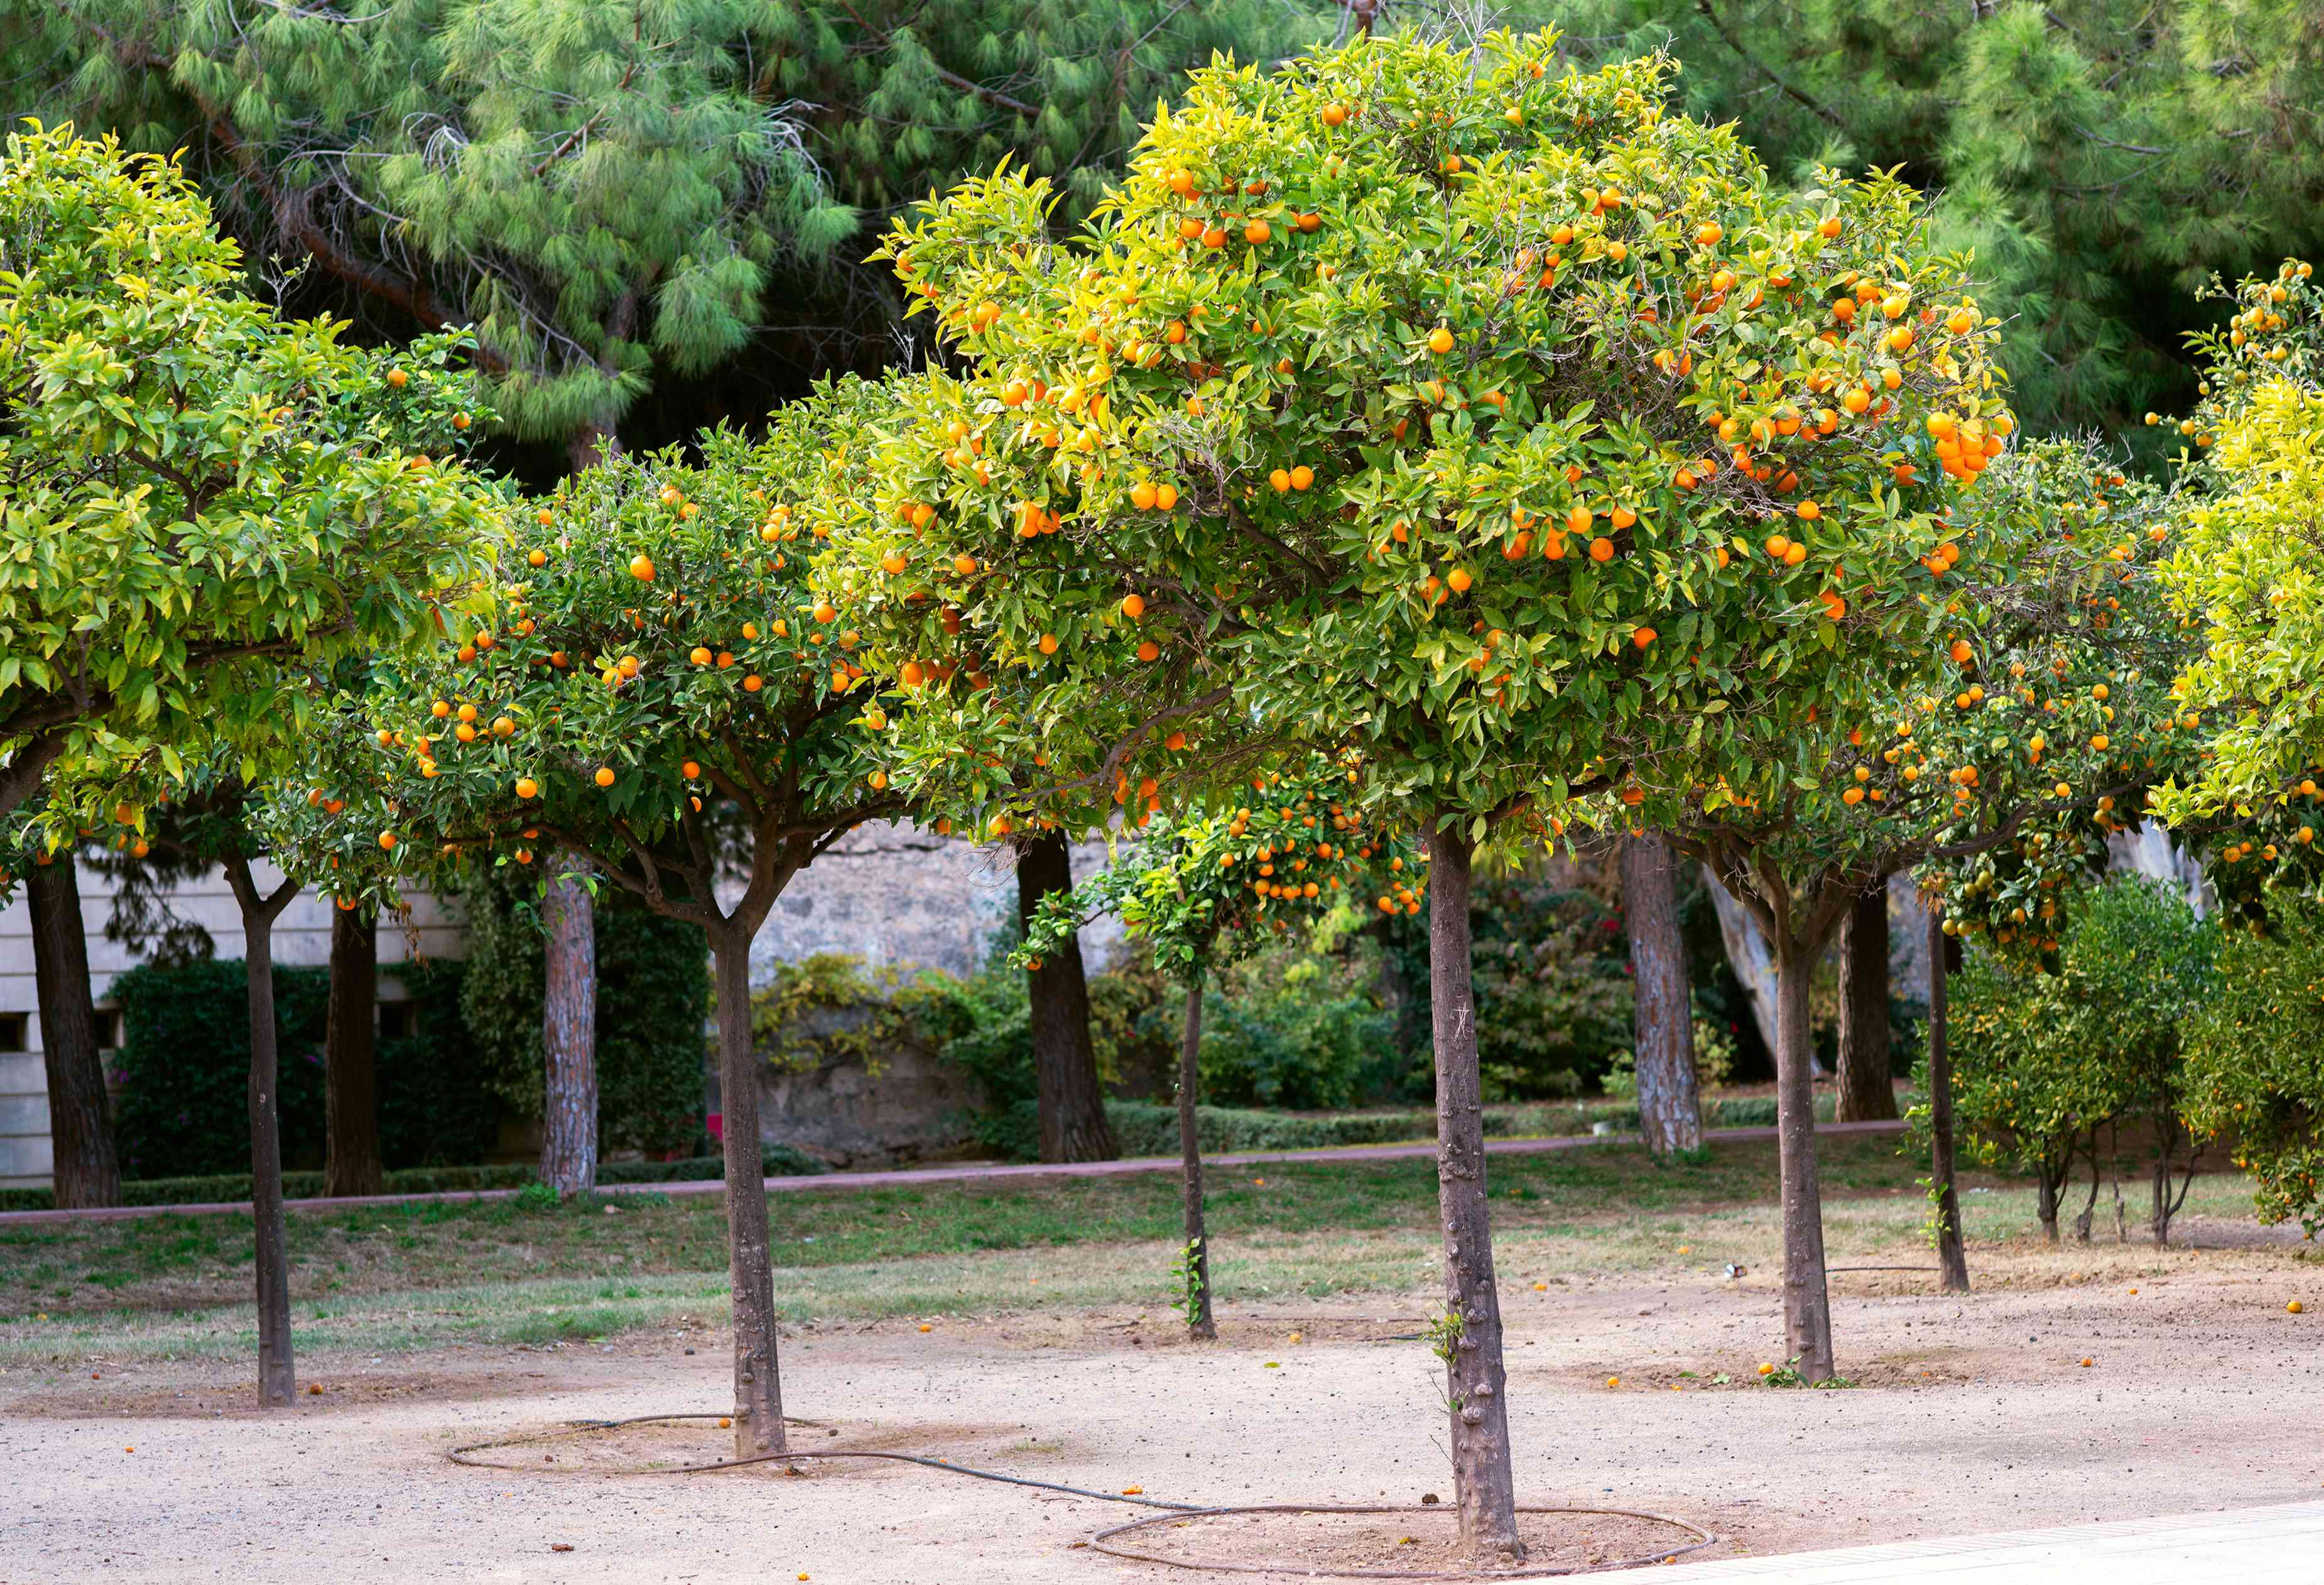 Satsuma trees in rows with round orange fruit hanging from branches